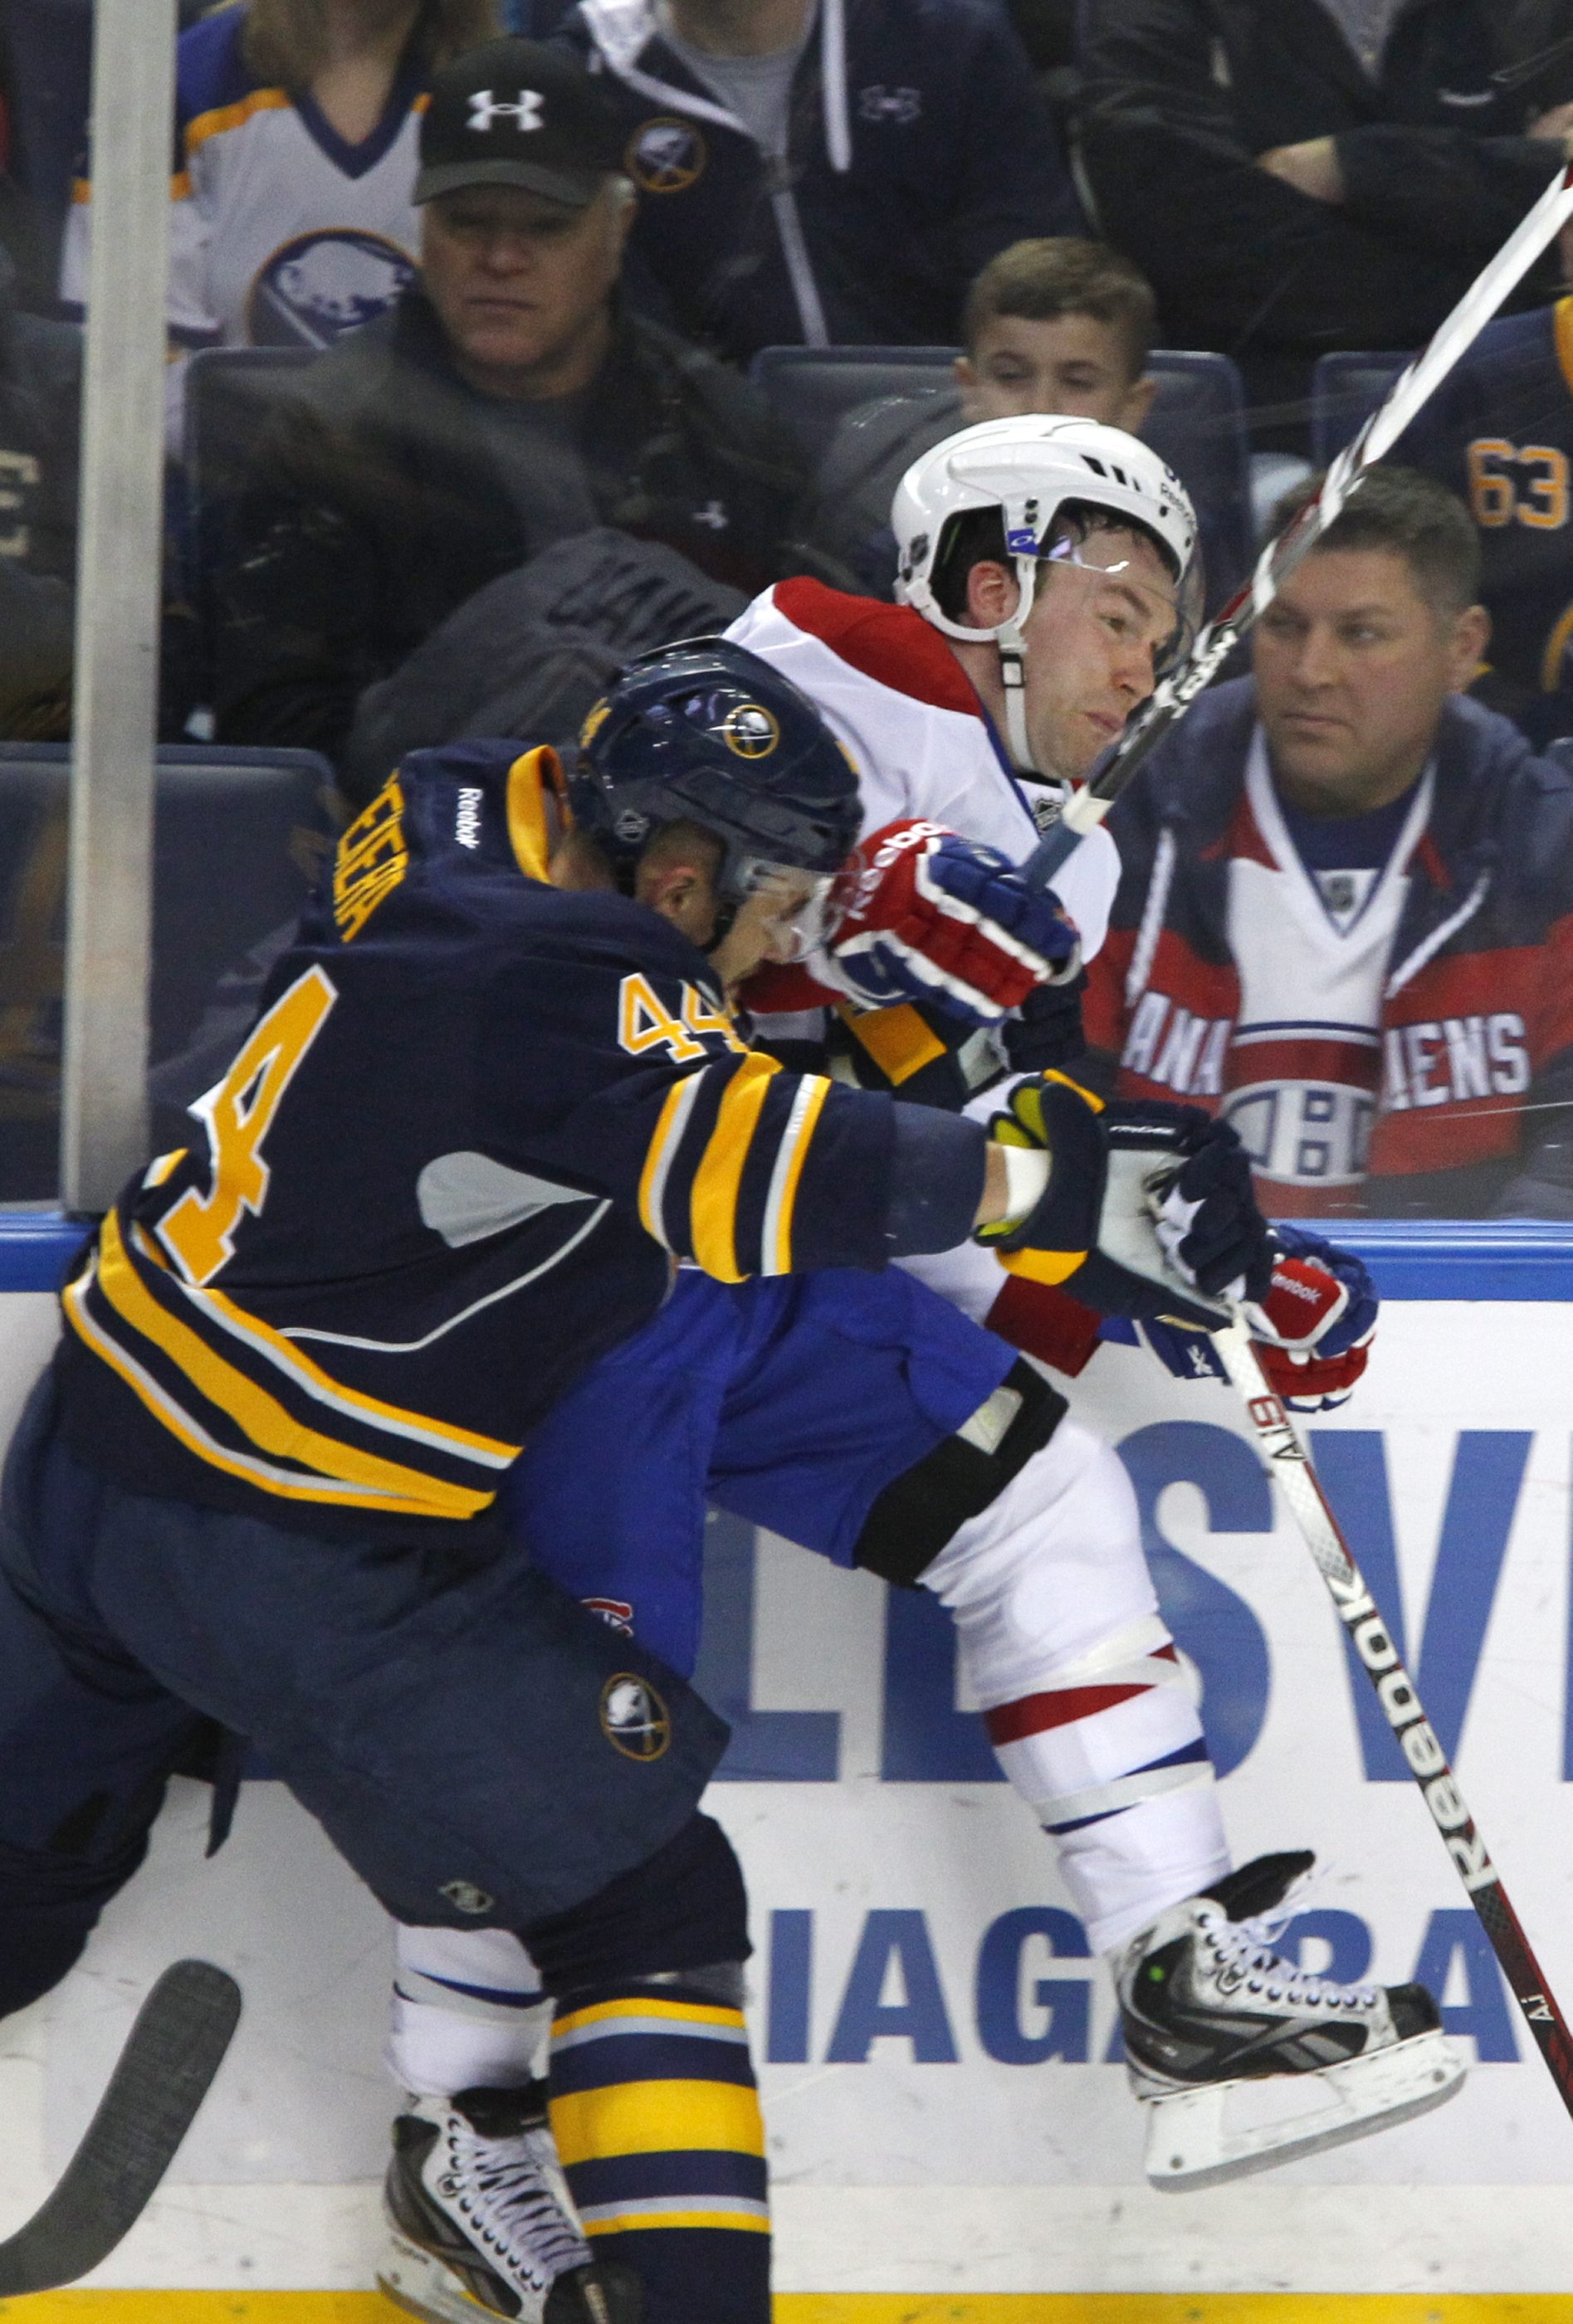 Buffalo defenseman Andrej Sekera checks Montreal forward David Desharnais in the first period of a 5-1 rout by the Habs.